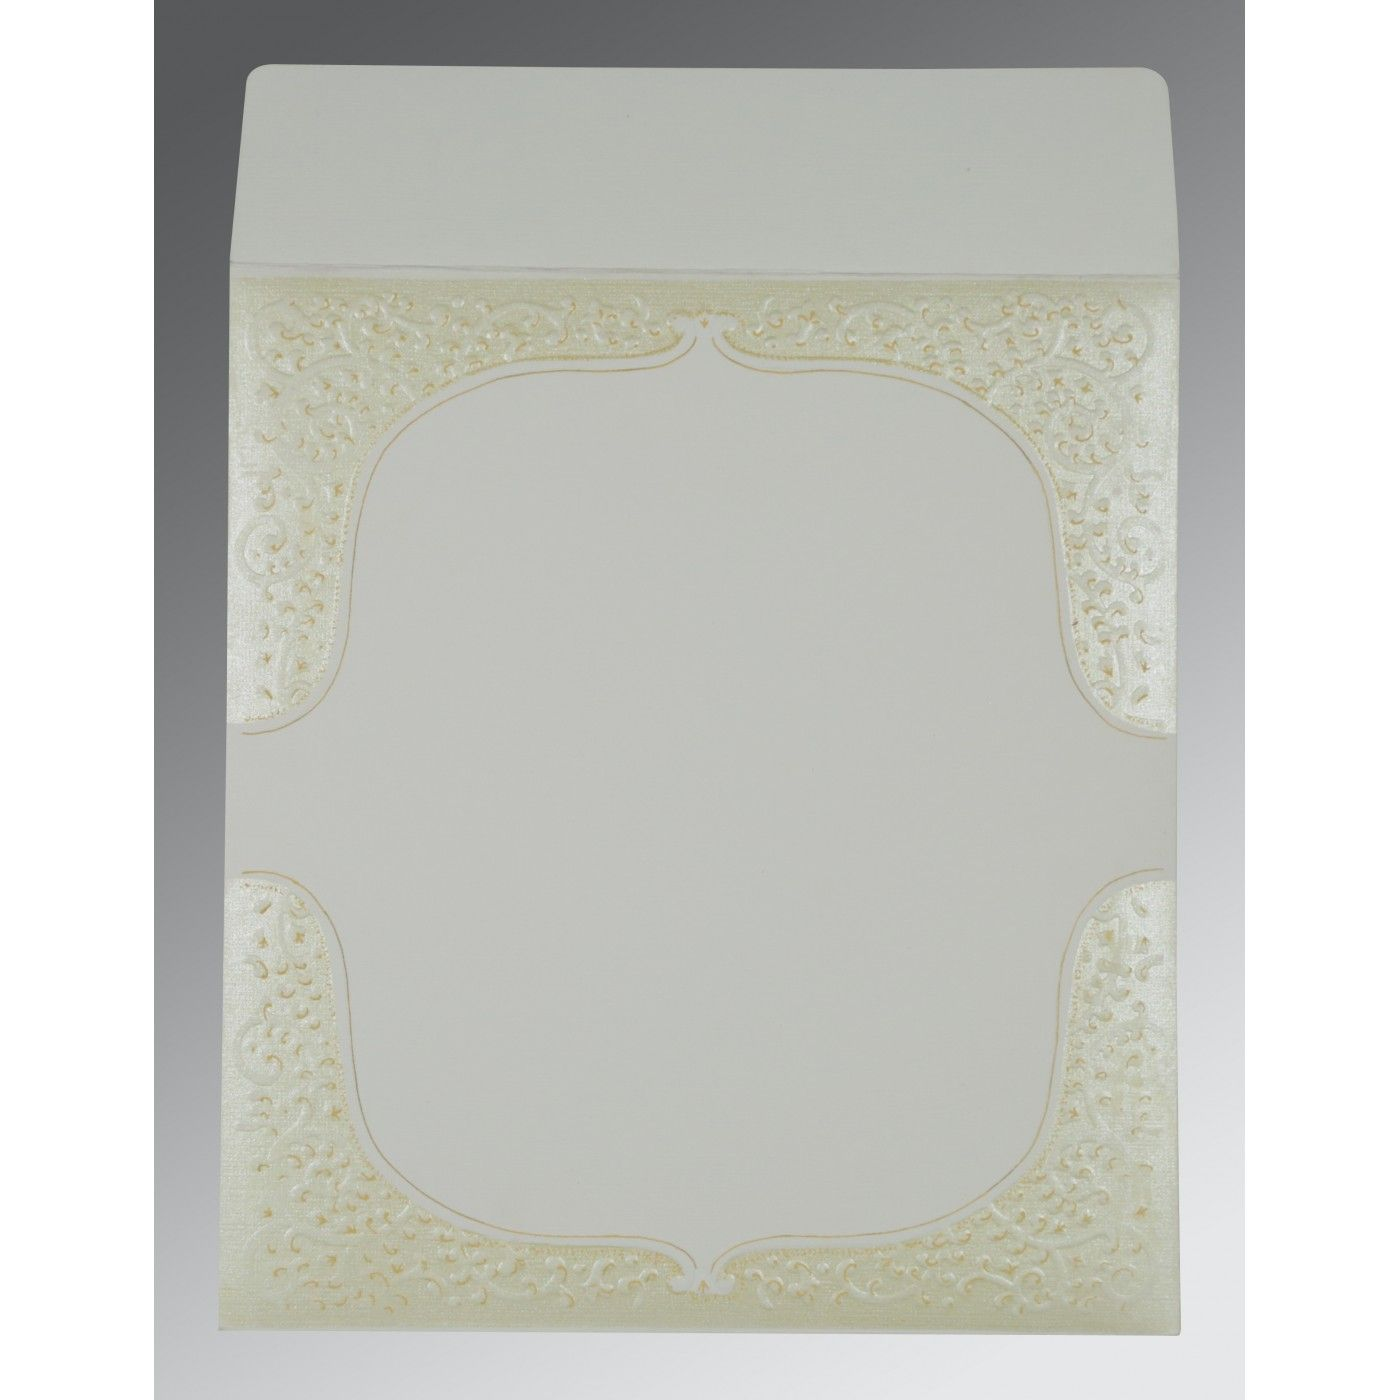 OFF-WHITE MATTE EMBOSSED WEDDING CARD : CS-1153 - IndianWeddingCards